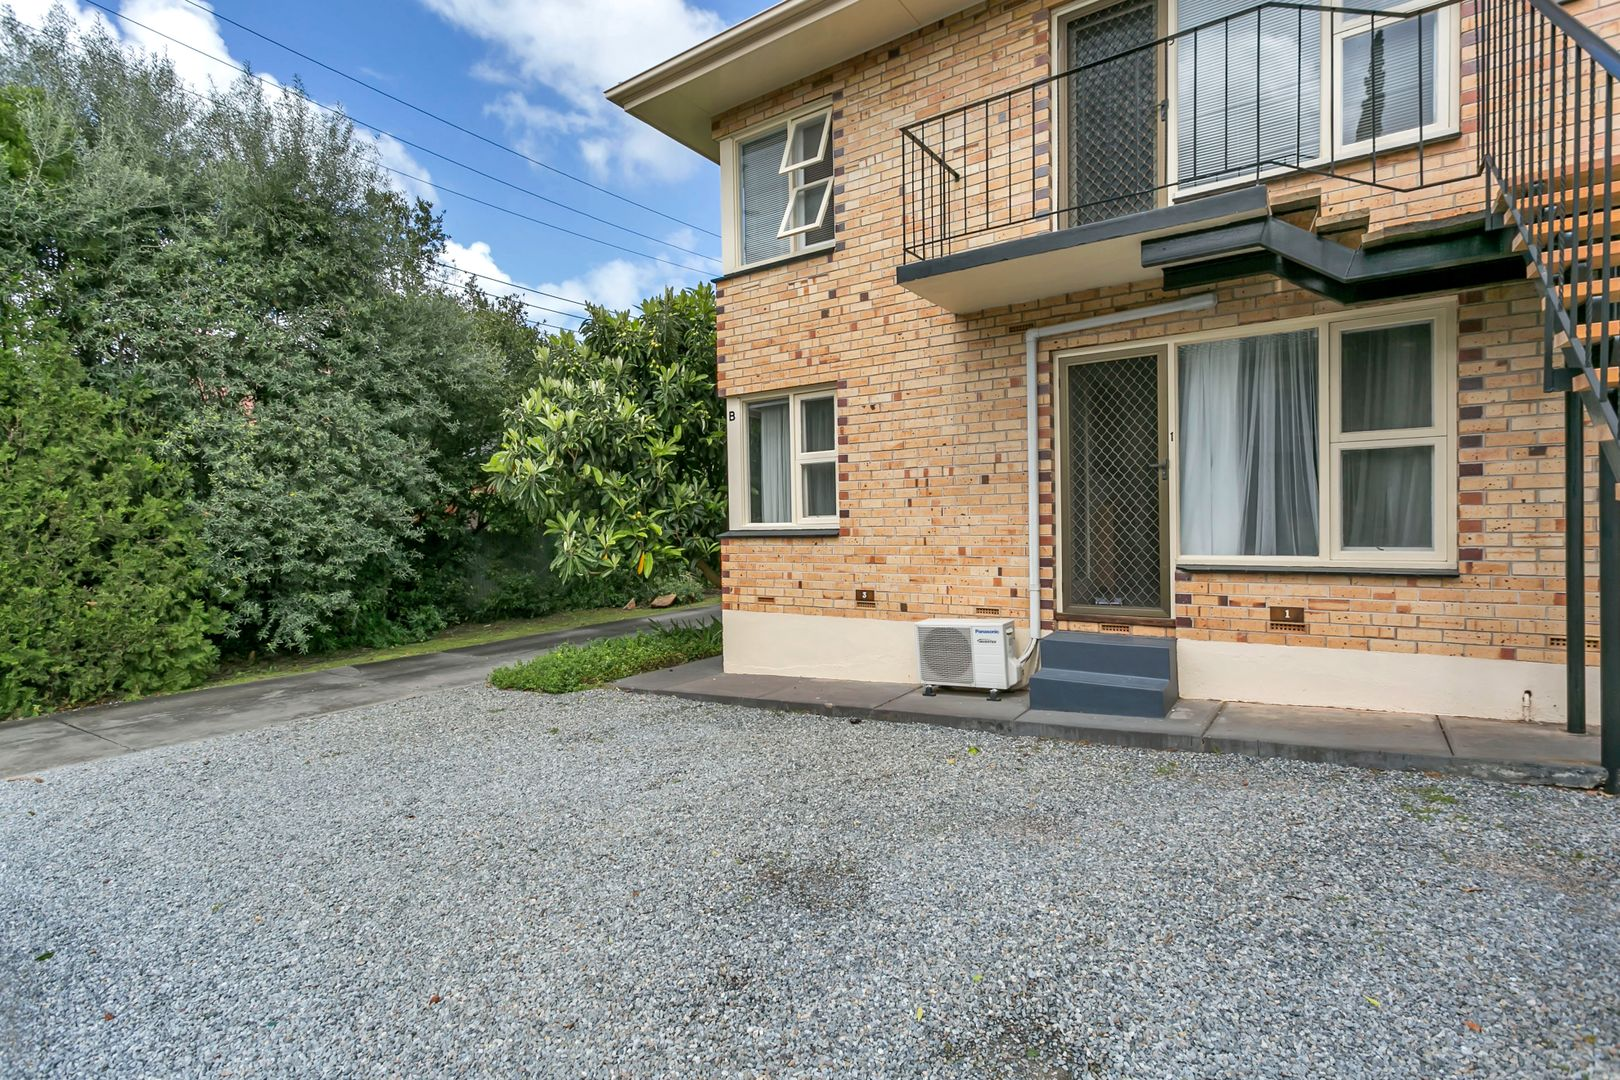 6/58 William Street, Norwood SA 5067, Image 1